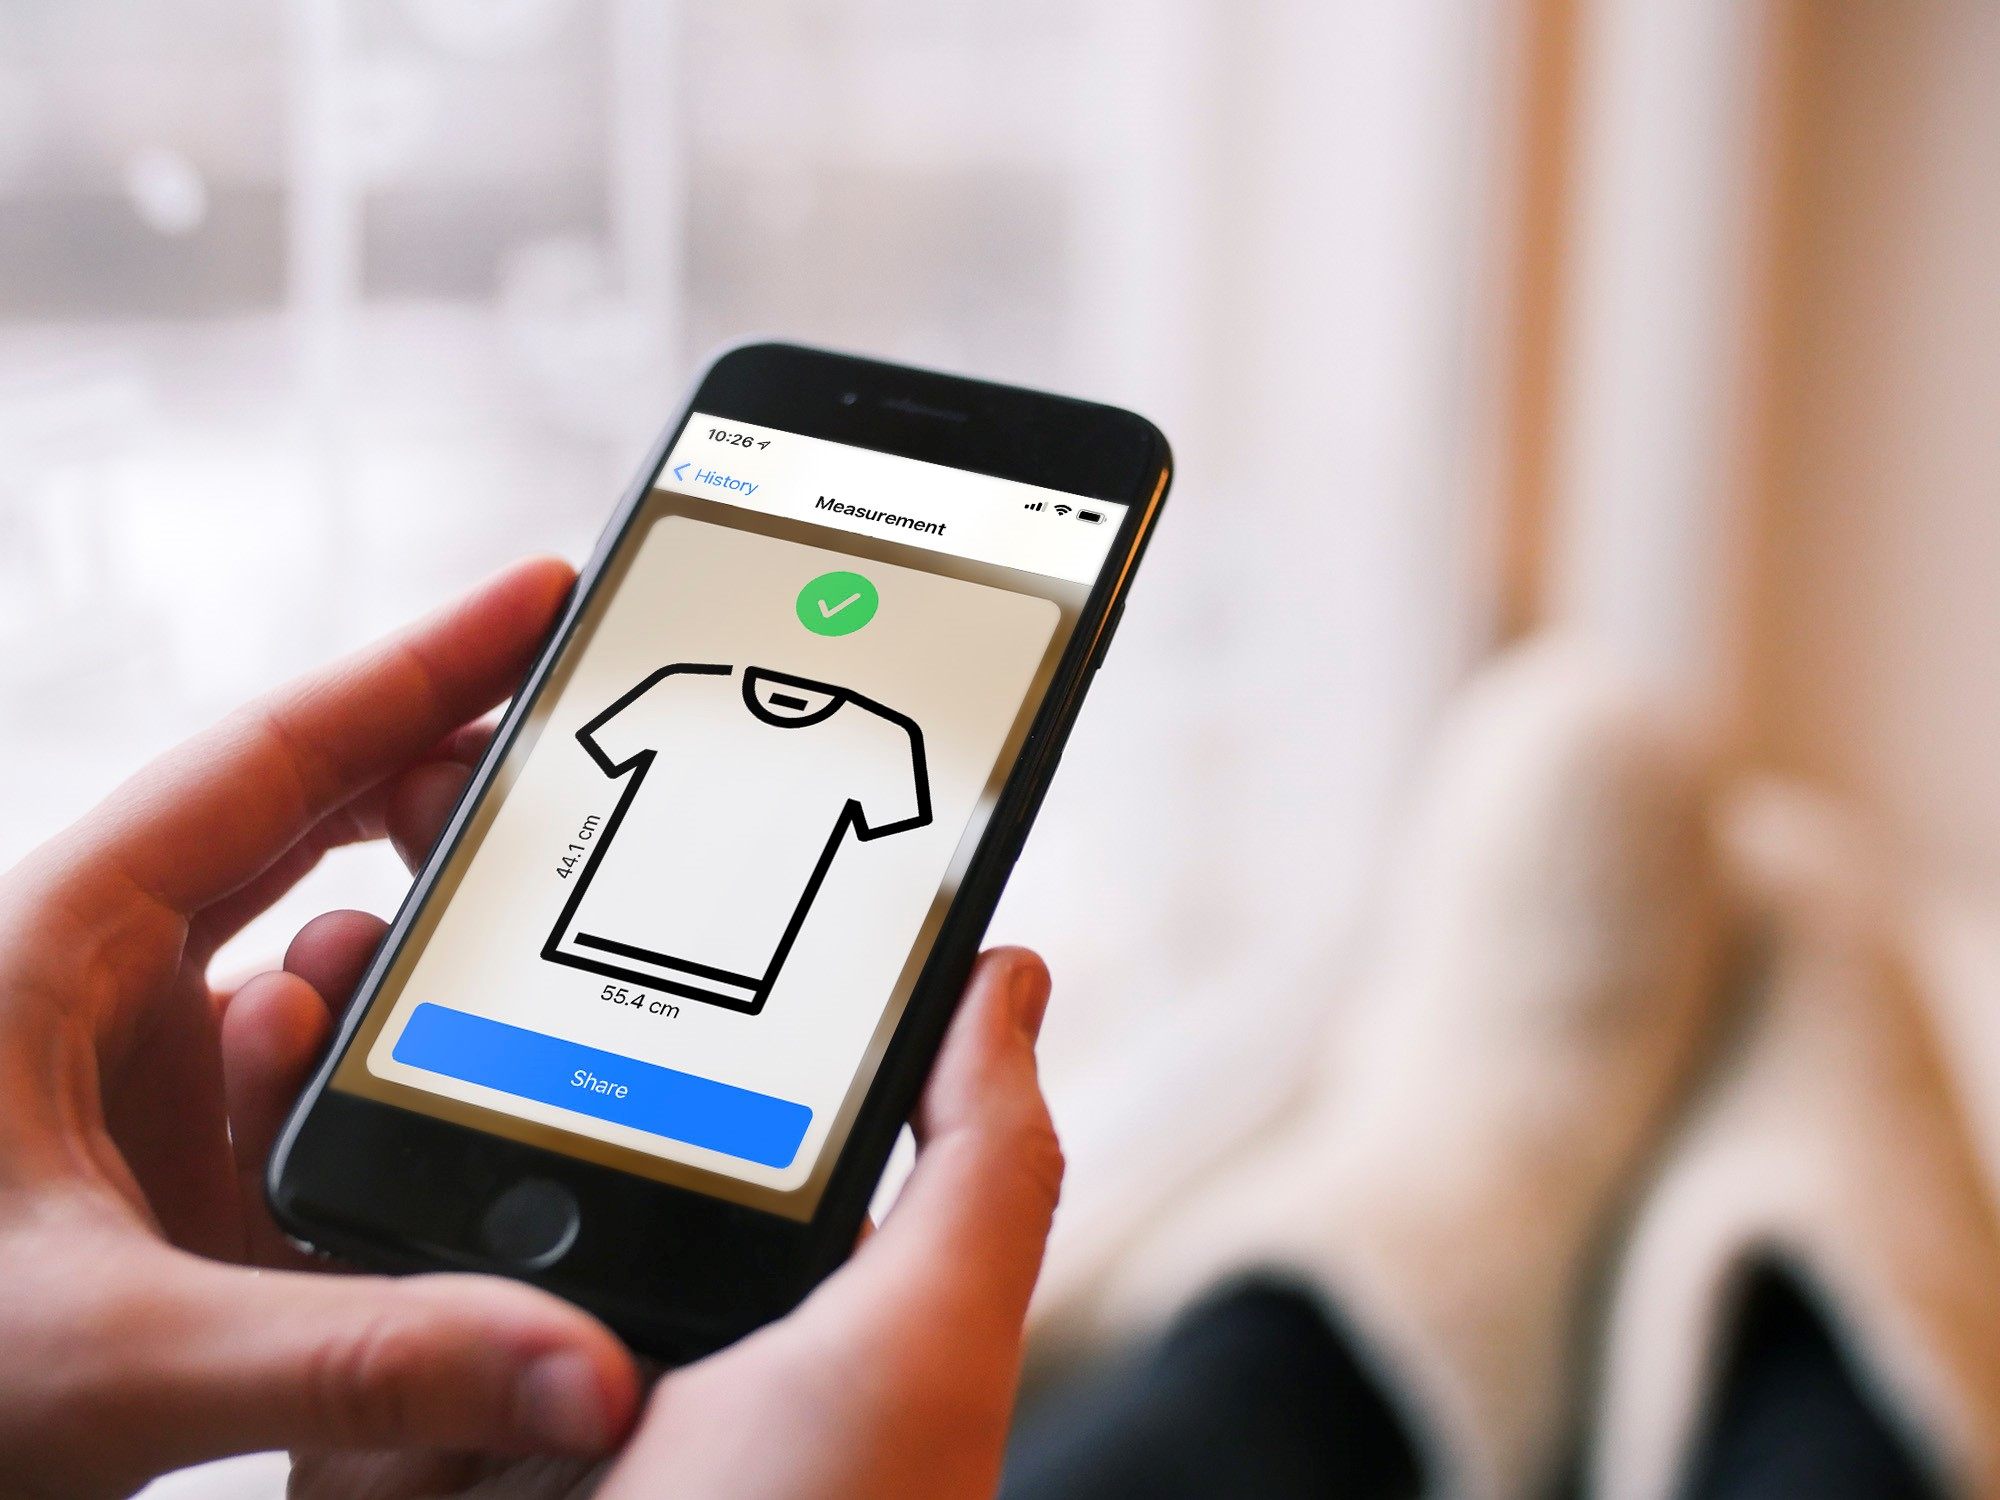 New sizing app with advanced technology can cut the cost of returns